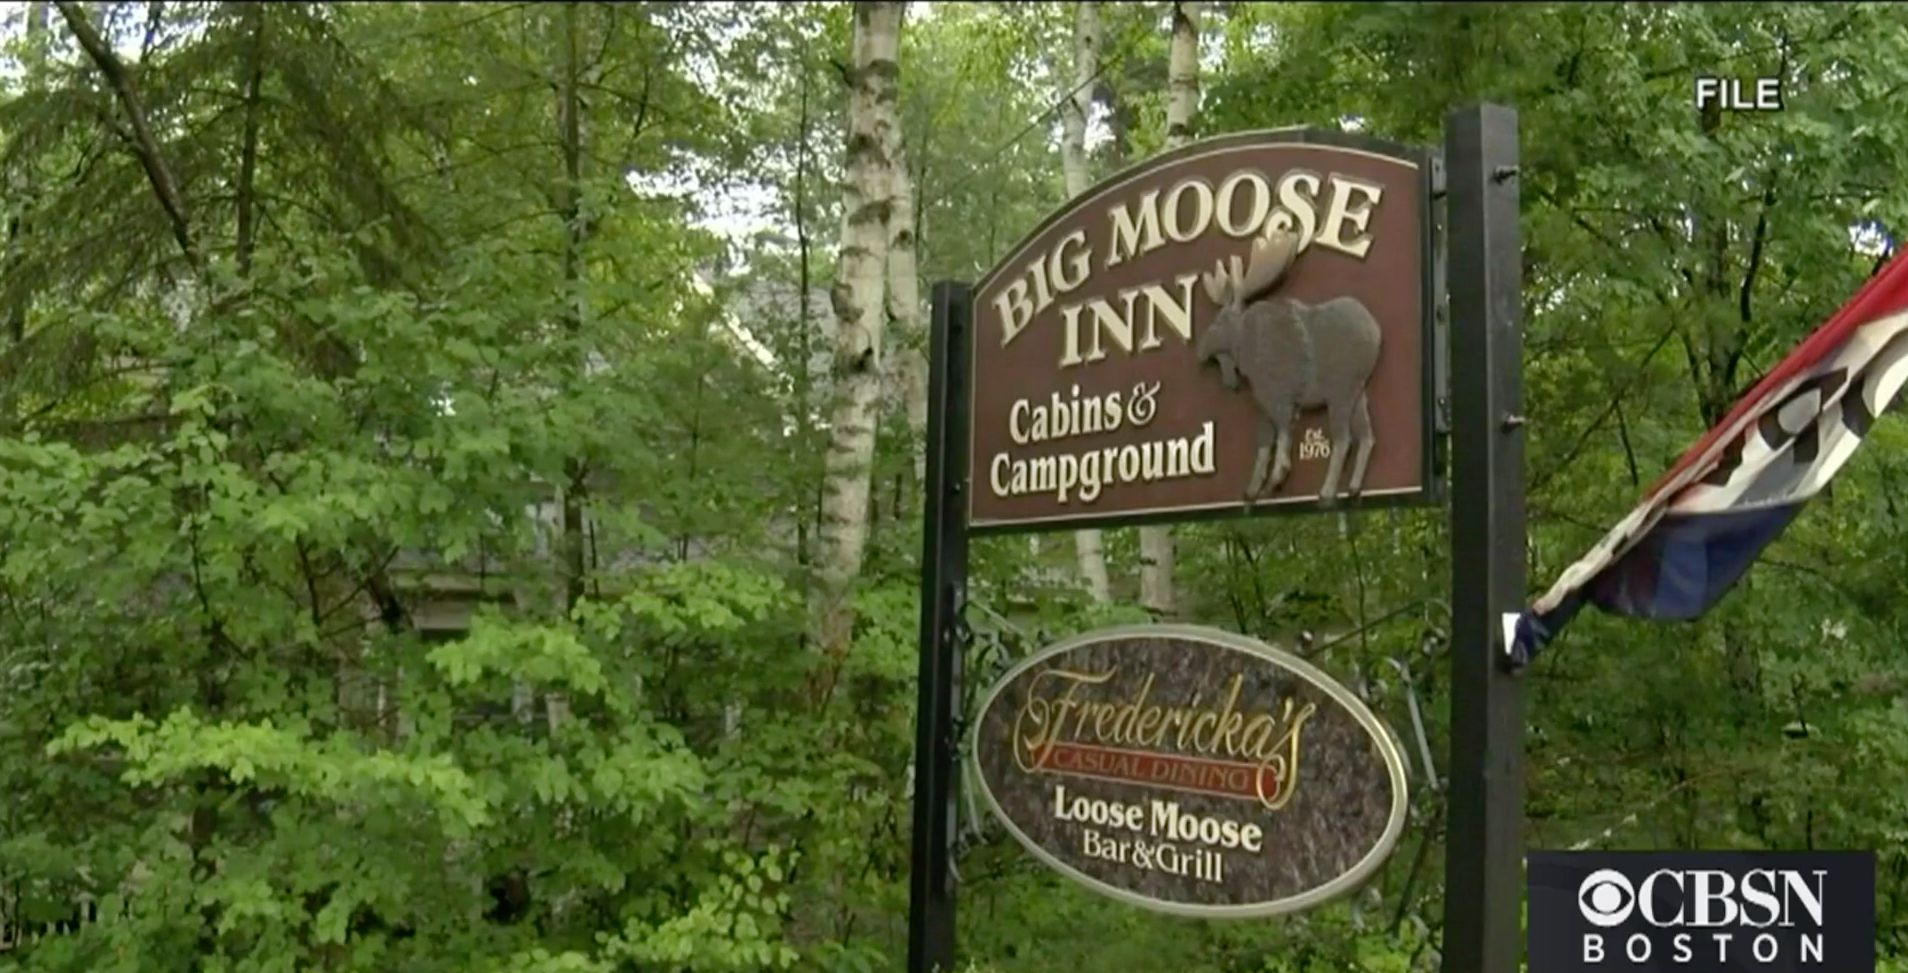 Health officials said they linked 147 cases of COVID-19, including three deaths, to a wedding reception at the Big Moose Inn